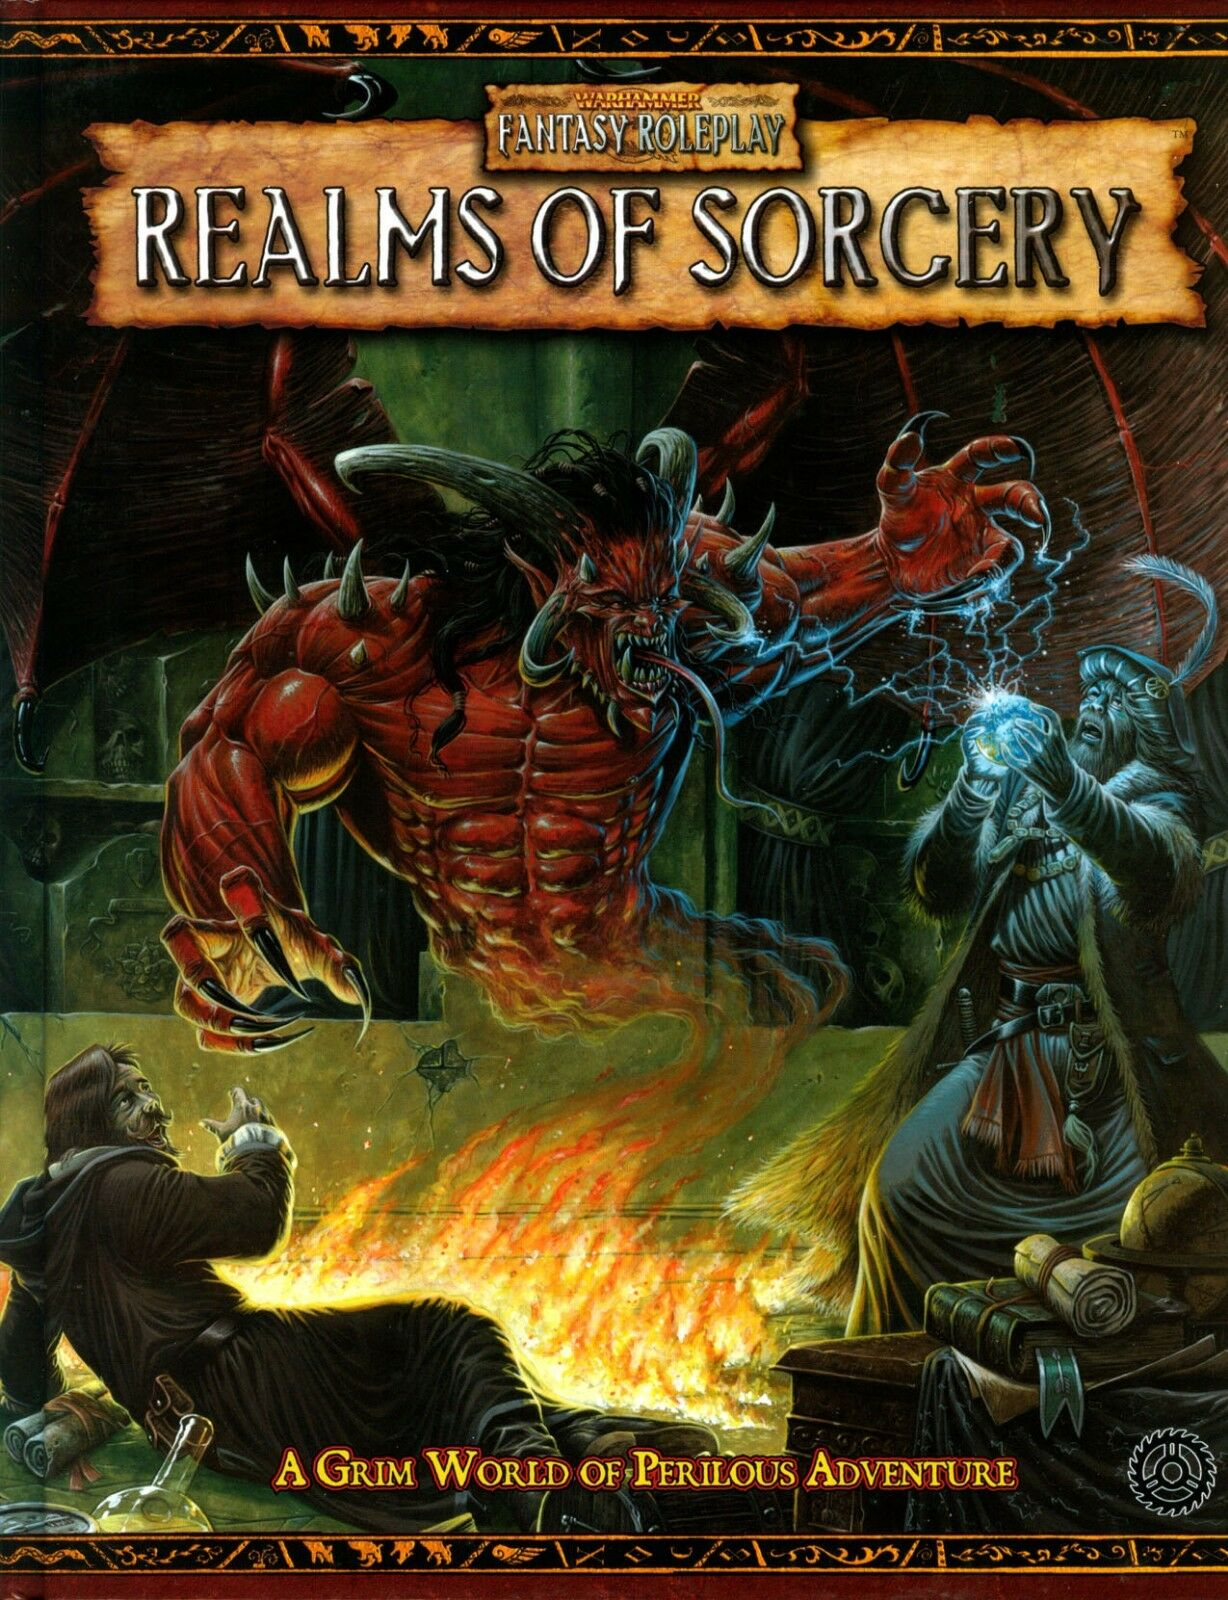 Warhammer Roleplay Realms of Sorcery Grim World of Perilous Adventure Hardcover